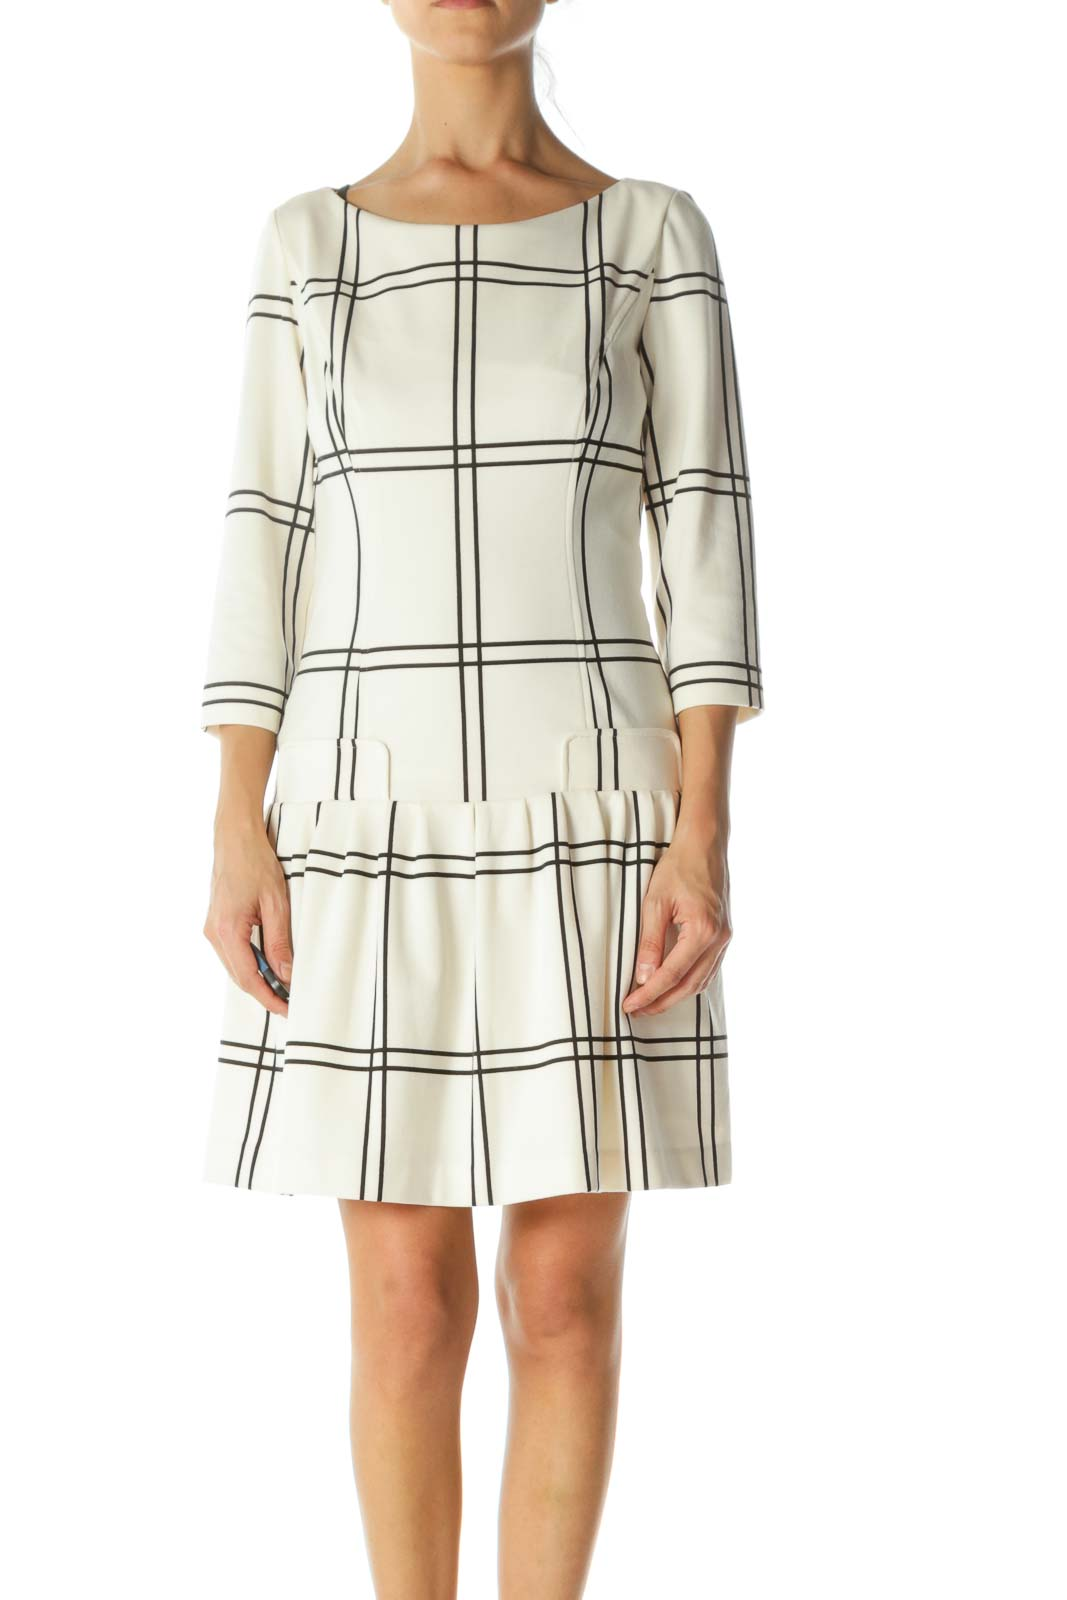 Black Cream Plaid Pleated-Skirt Long Sleeve Stretch Dress